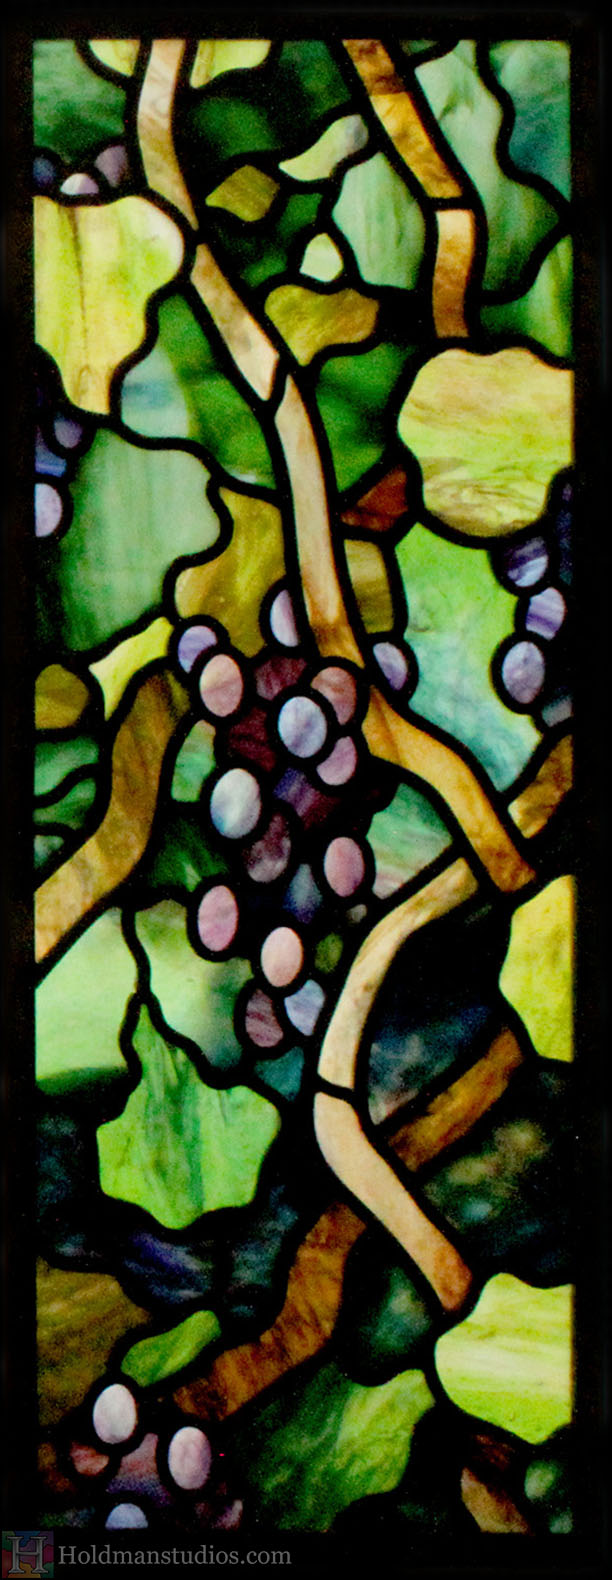 Stained glass kitchen cabinet window of vines, leaves, blossoms, and grapes. Created by artists under the direction of Tom Holdman at Holdman Studios